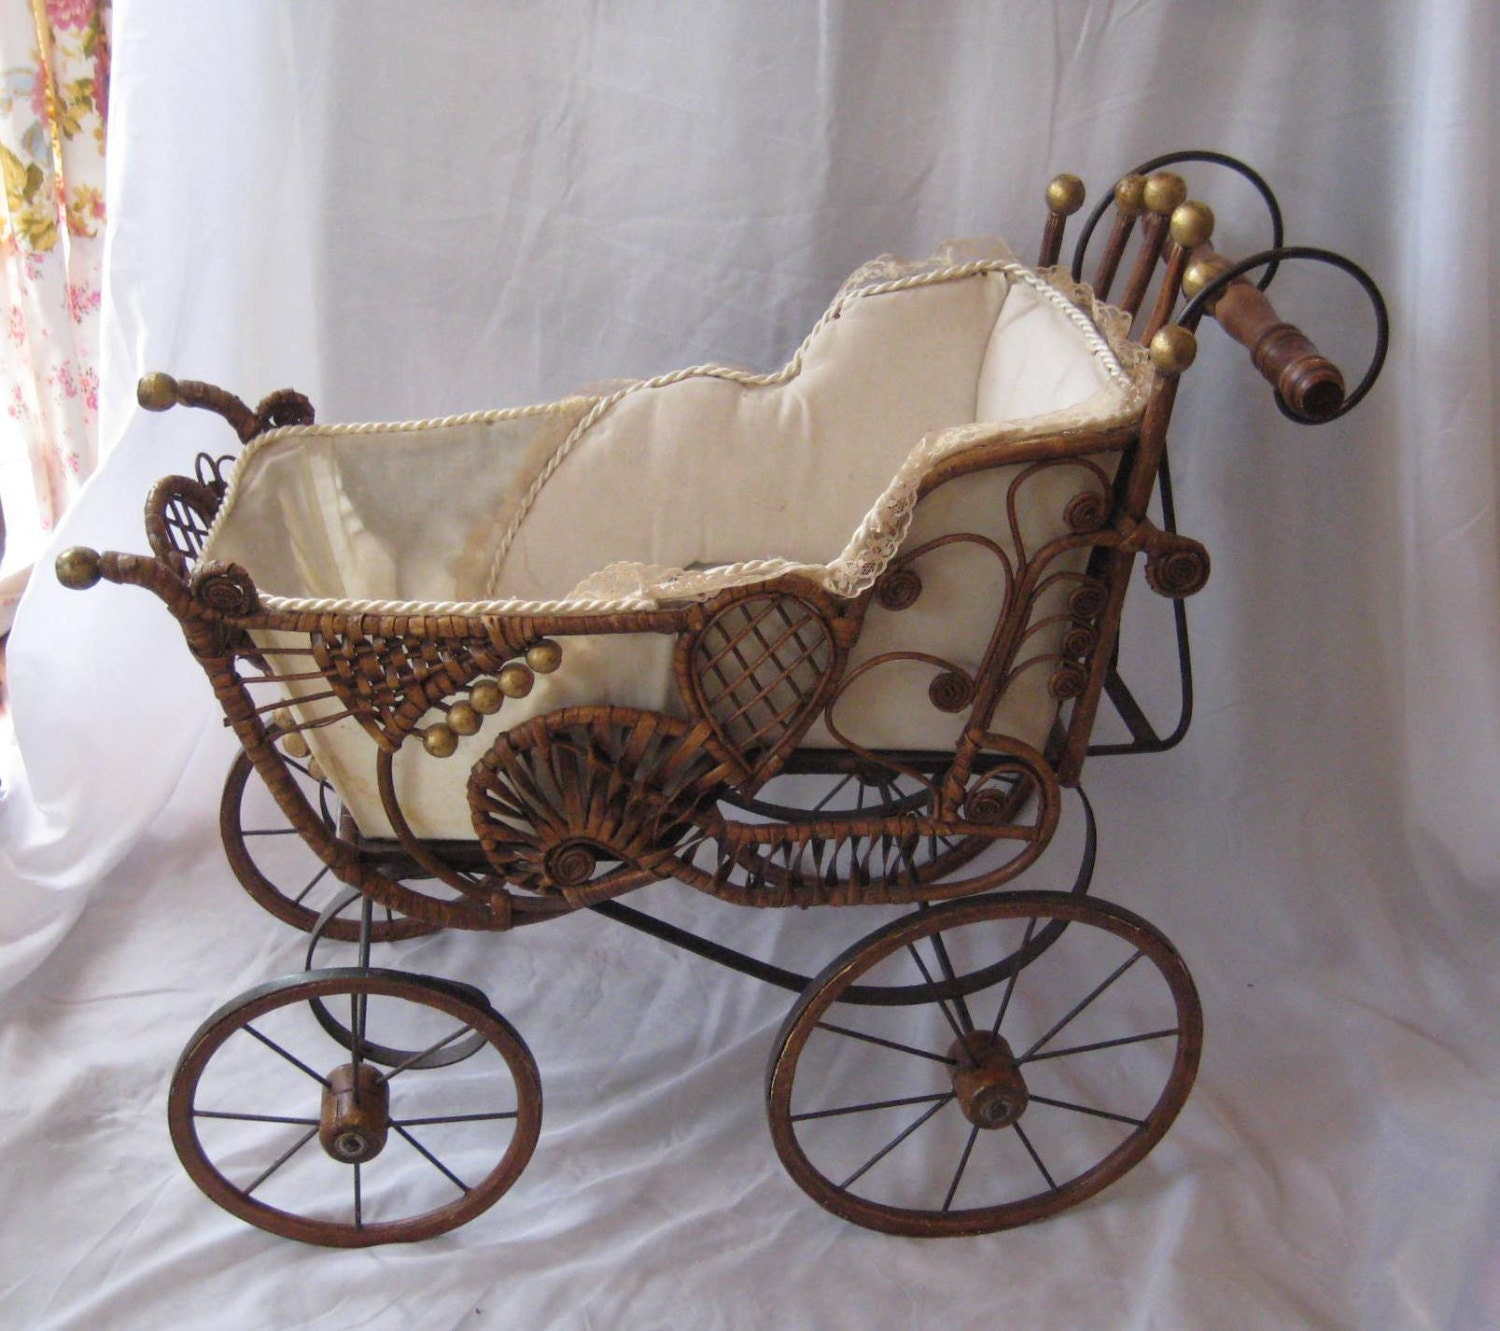 Antique Wicker Doll Stroller From 1800s Vintage Pram Vintage